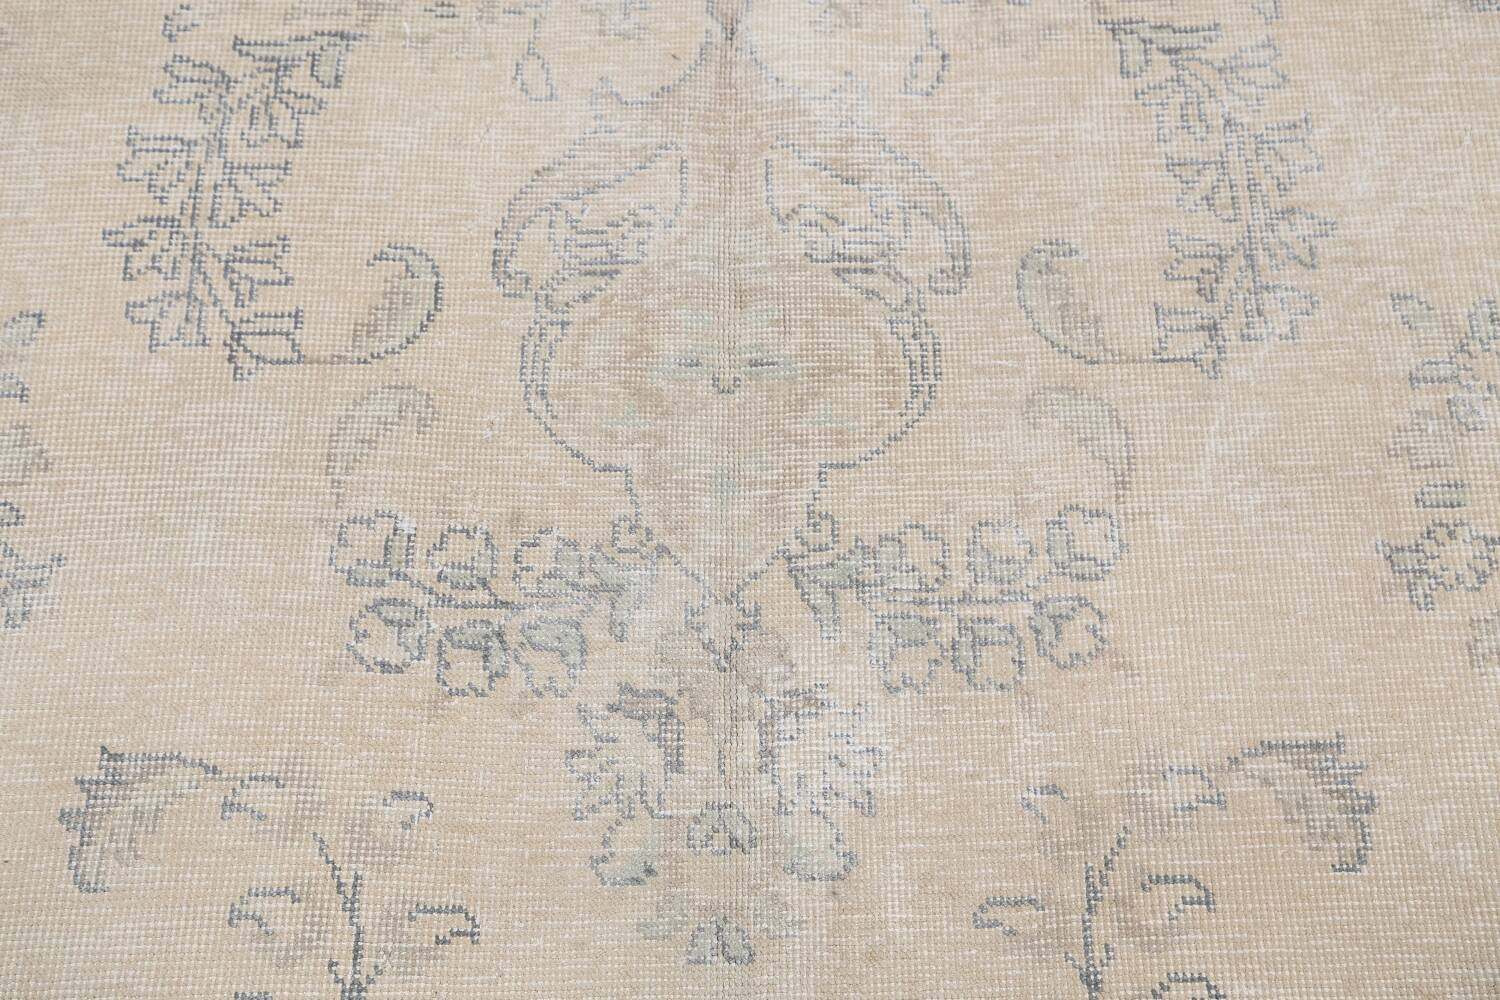 Muted Distressed Floral Tabriz Persian Area Rug 8x12 image 10